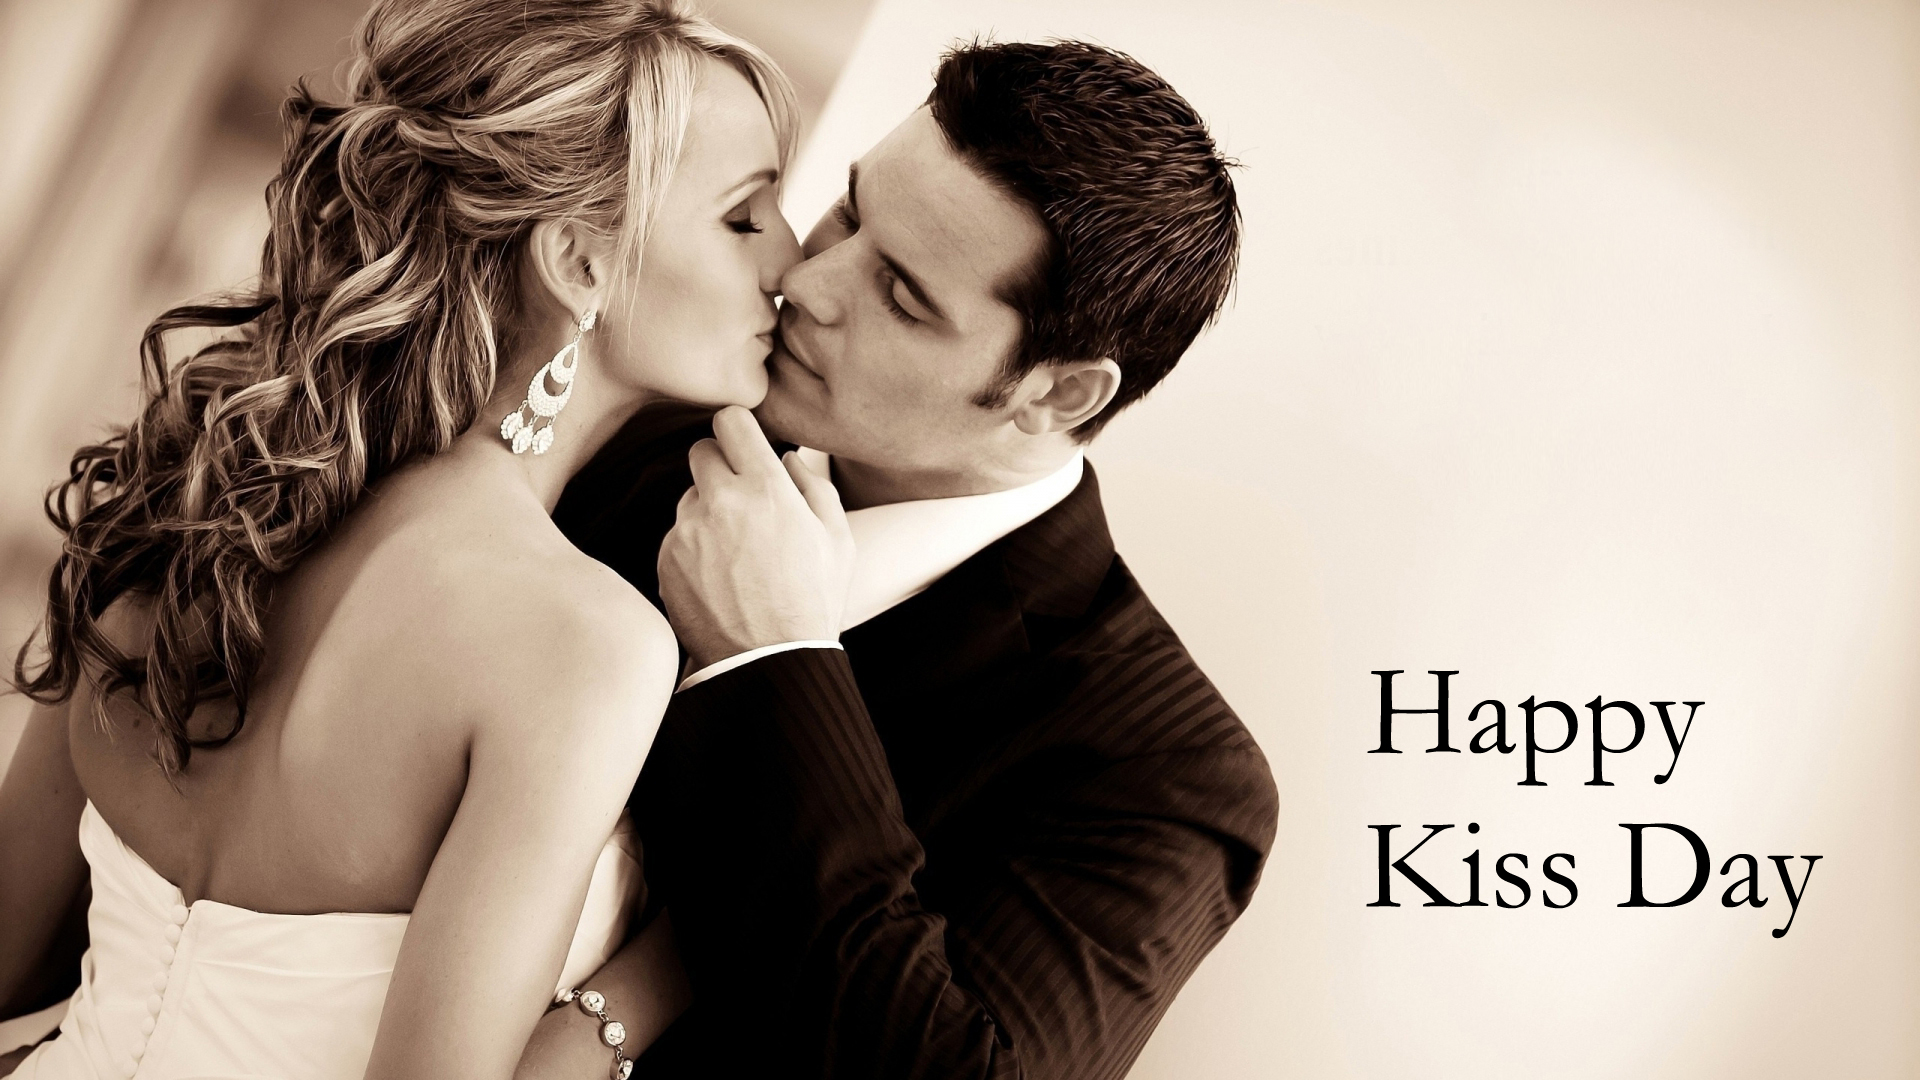 Wallpaper Of Kiss Day